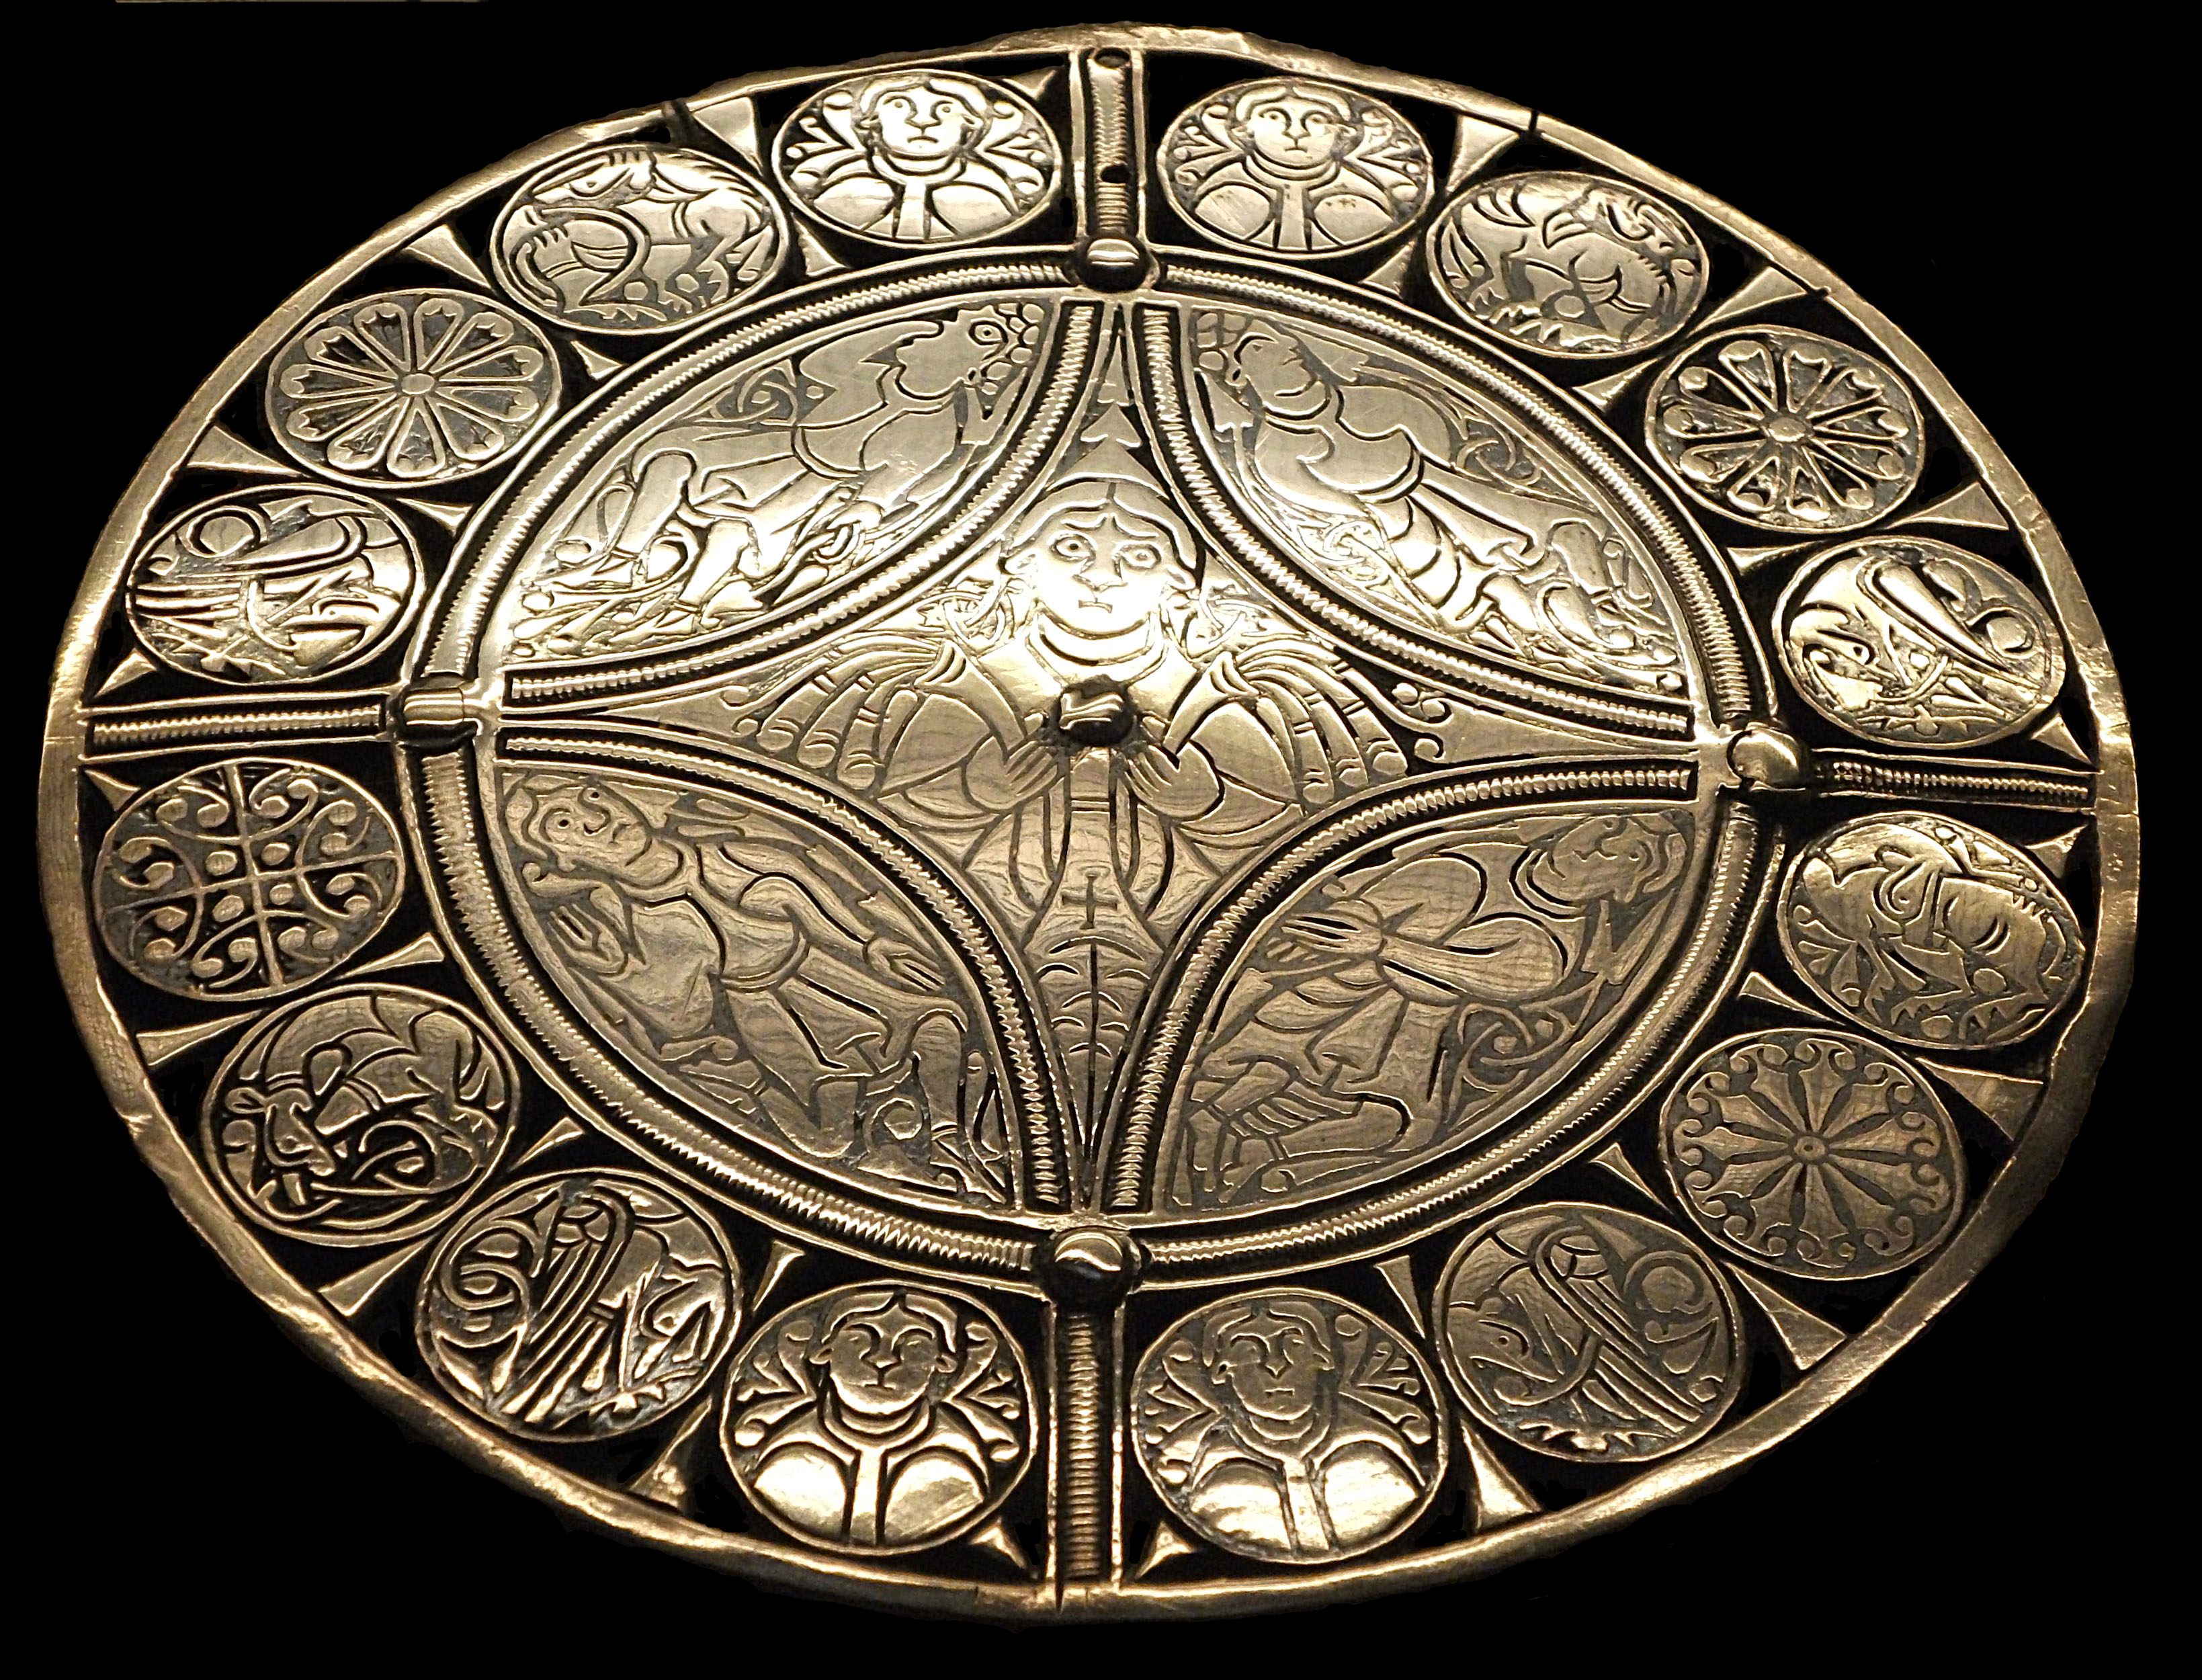 File:Brit Mus Fuller Brooch.jpg - Wikipedia, the free encyclopedia